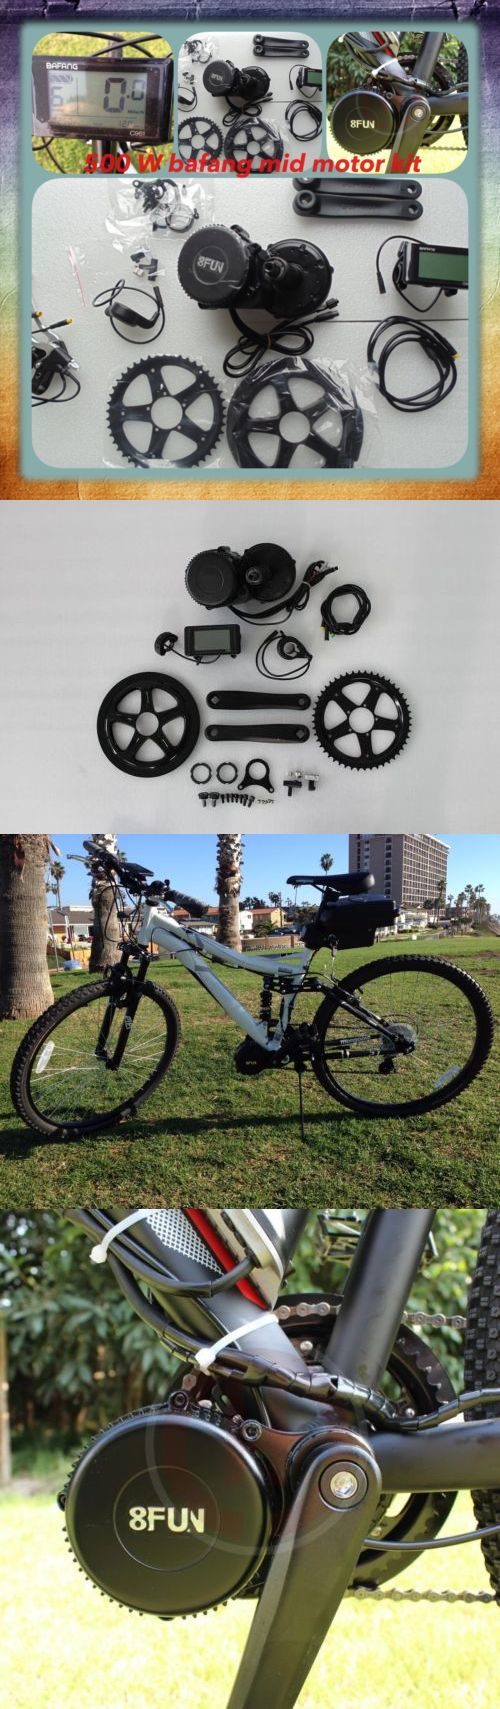 Electric Bicycle Components 177814: 36V 500 W Mid Drive 8 Fun ,Electric Bike Kit,Bafang 8 Fun Motor, -> BUY IT NOW ONLY: $500 on eBay!